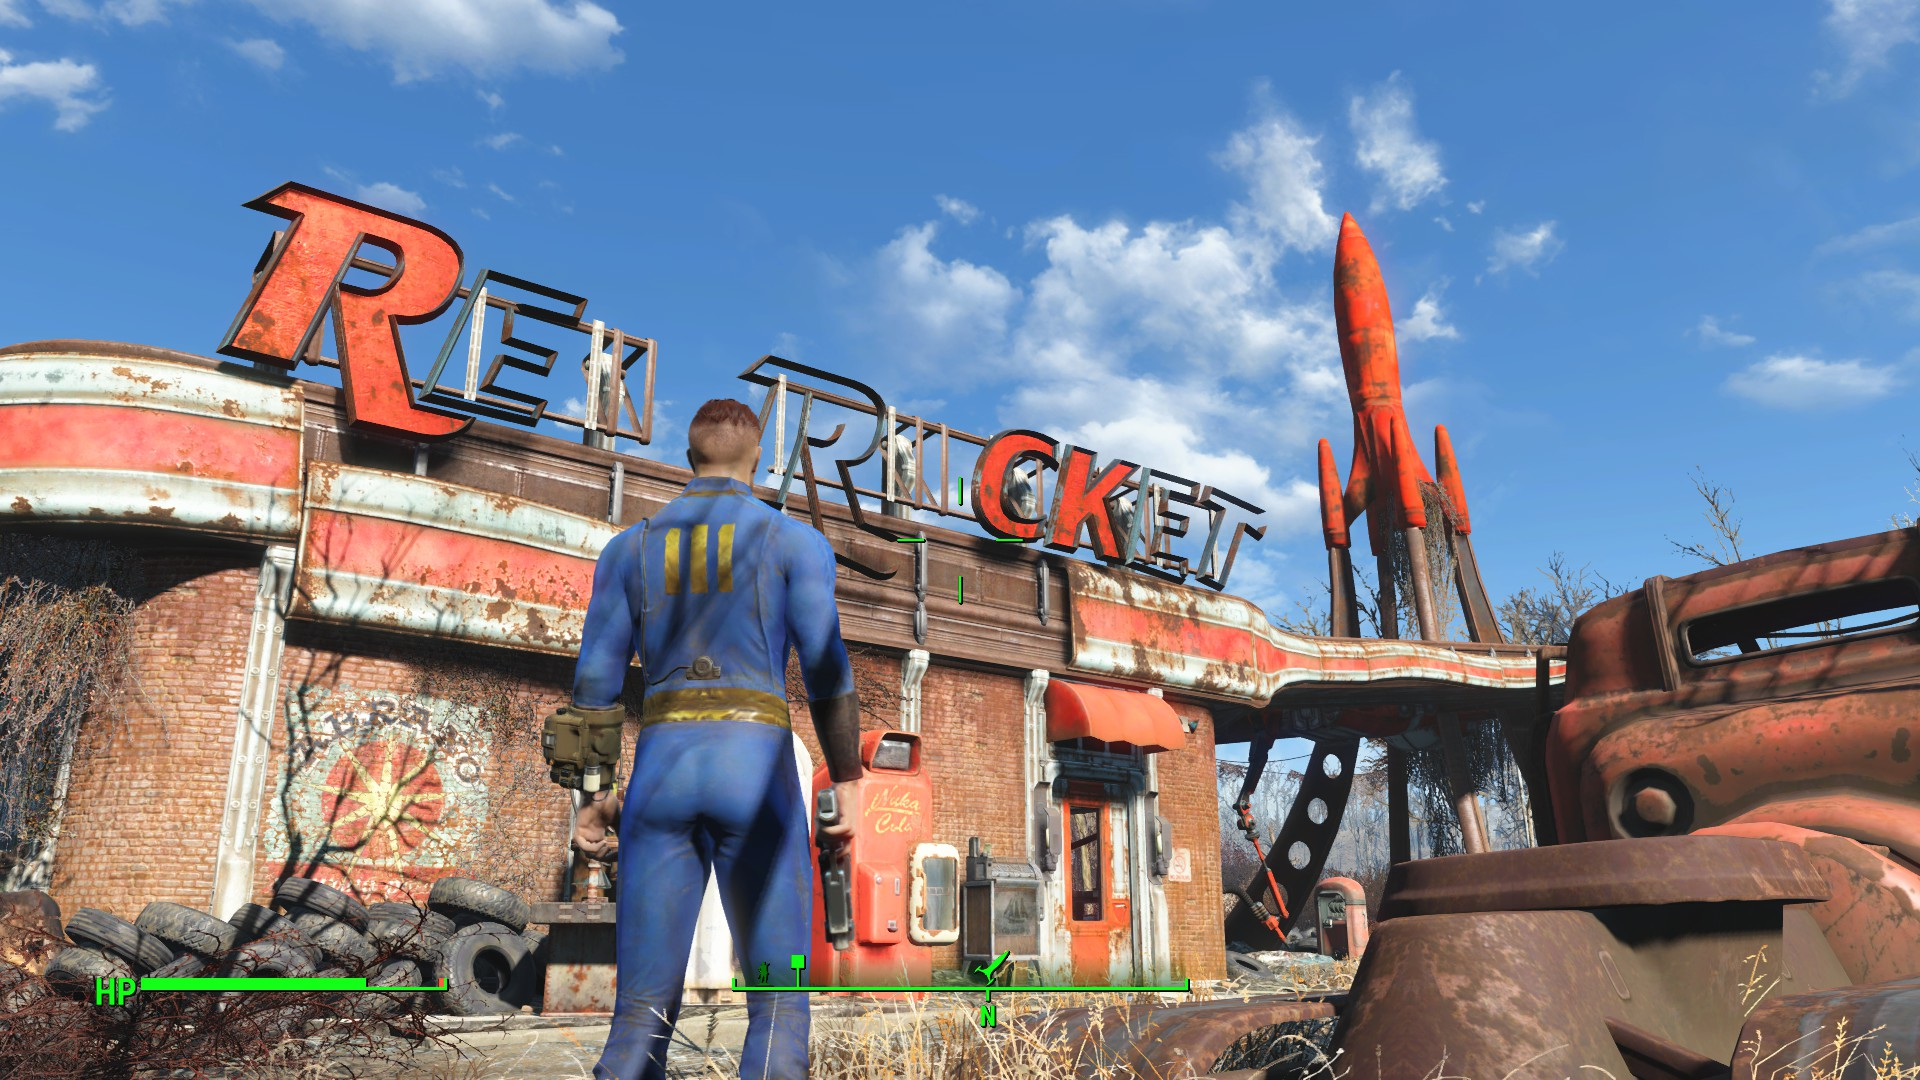 Official] Fallout 4 Information and Discussion Thread - Page